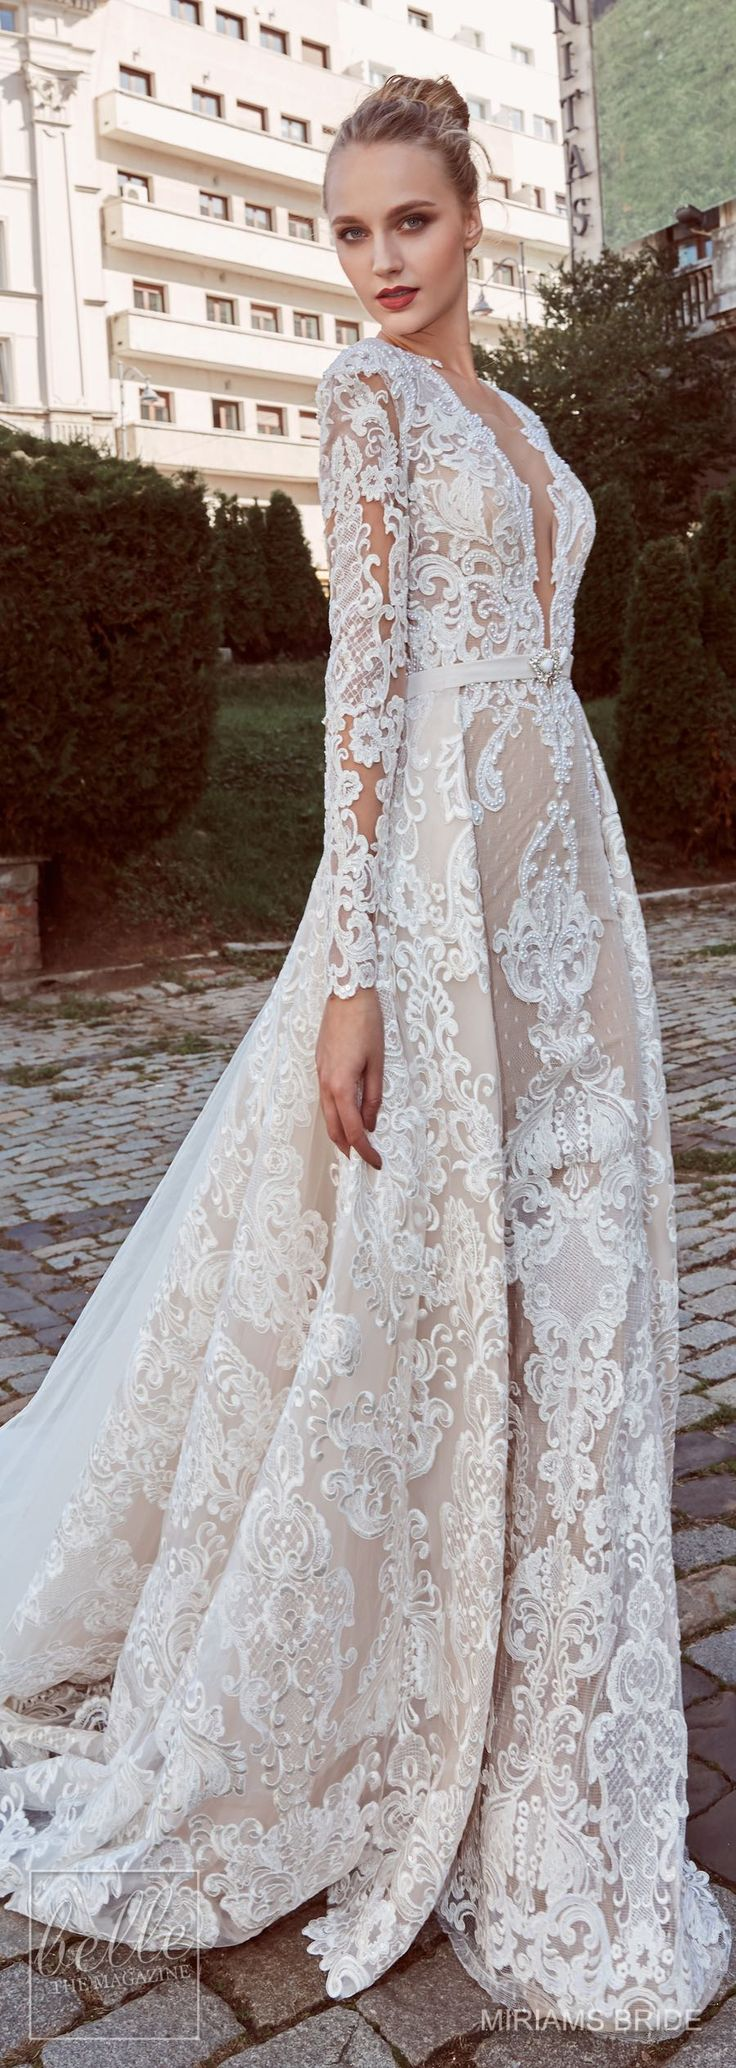 Wedding dresses from Miriam's Bride collection 2018